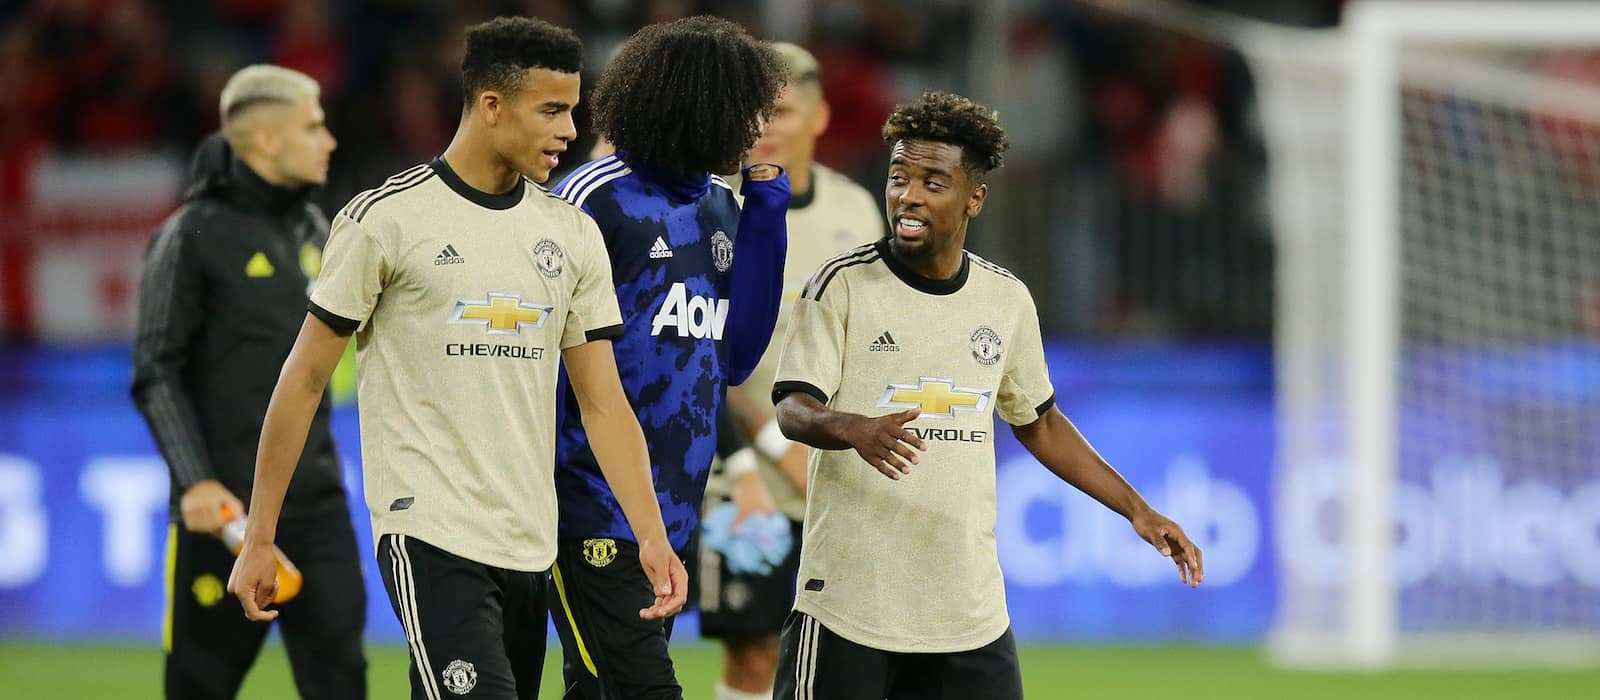 Mason Greenwood amongst youngsters set for new contracts